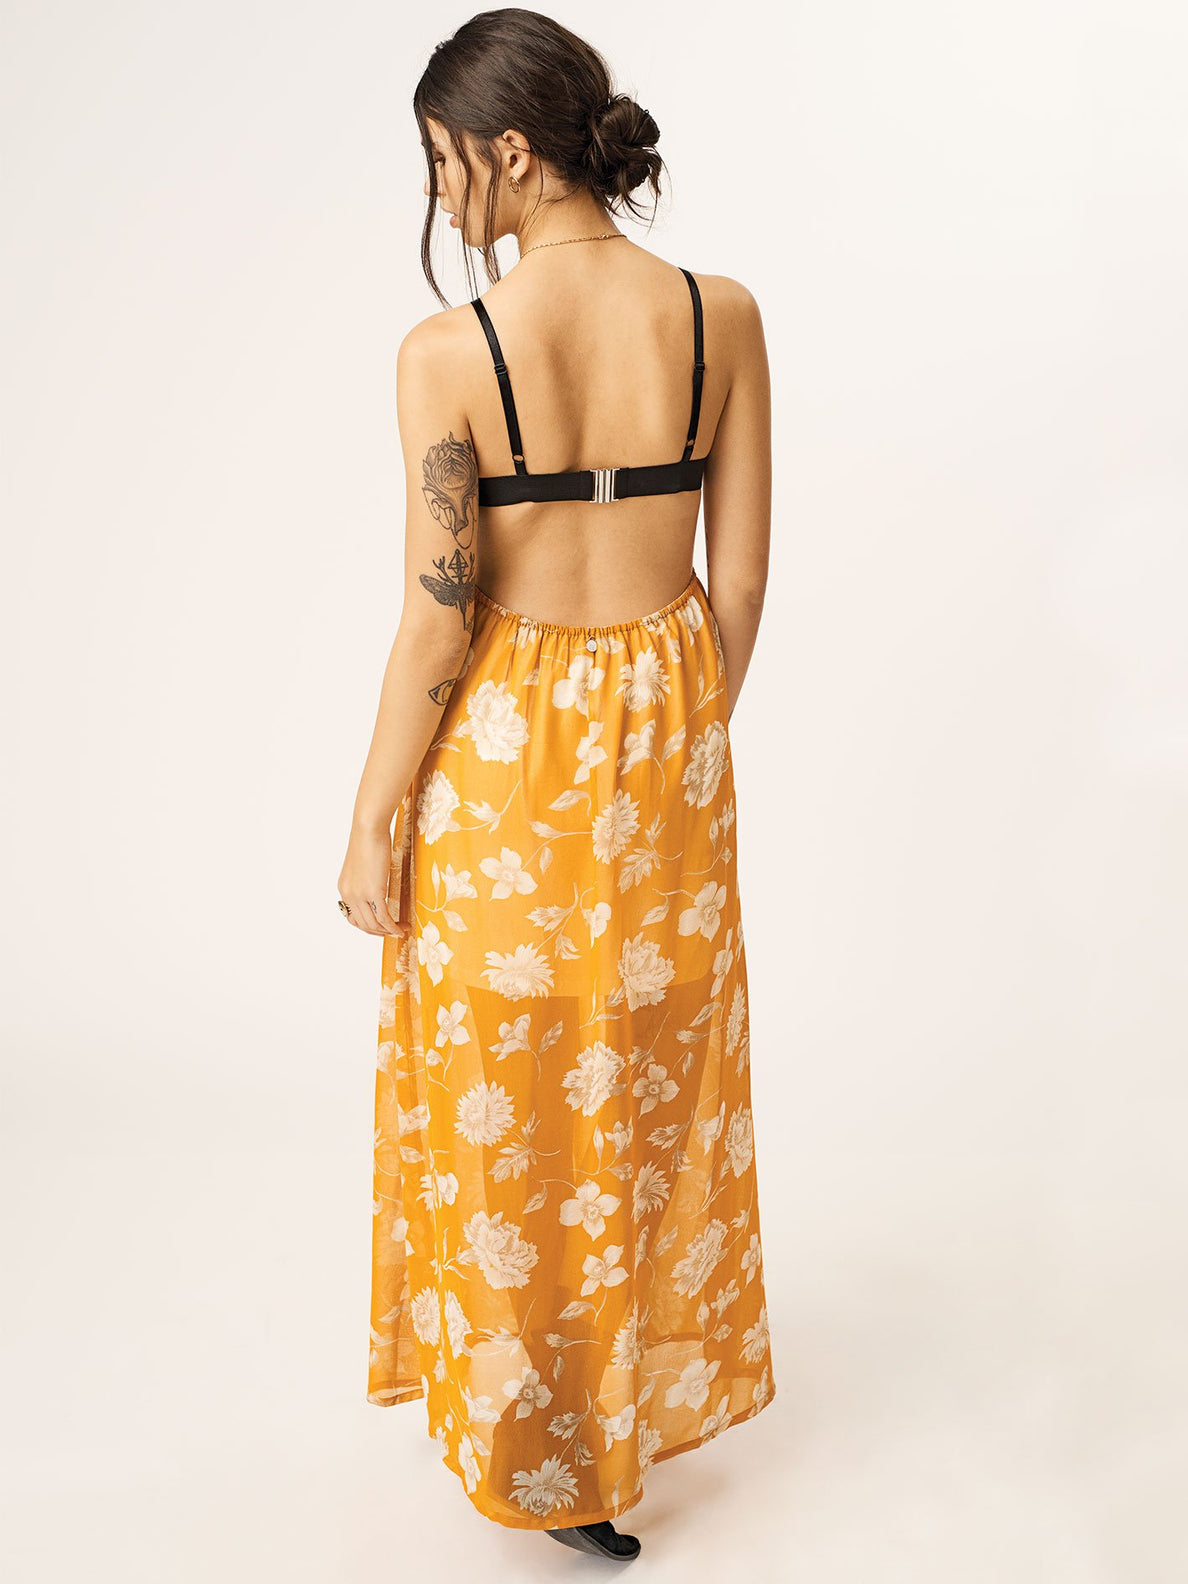 Net Gonna Die Dress In Mustard, Back View